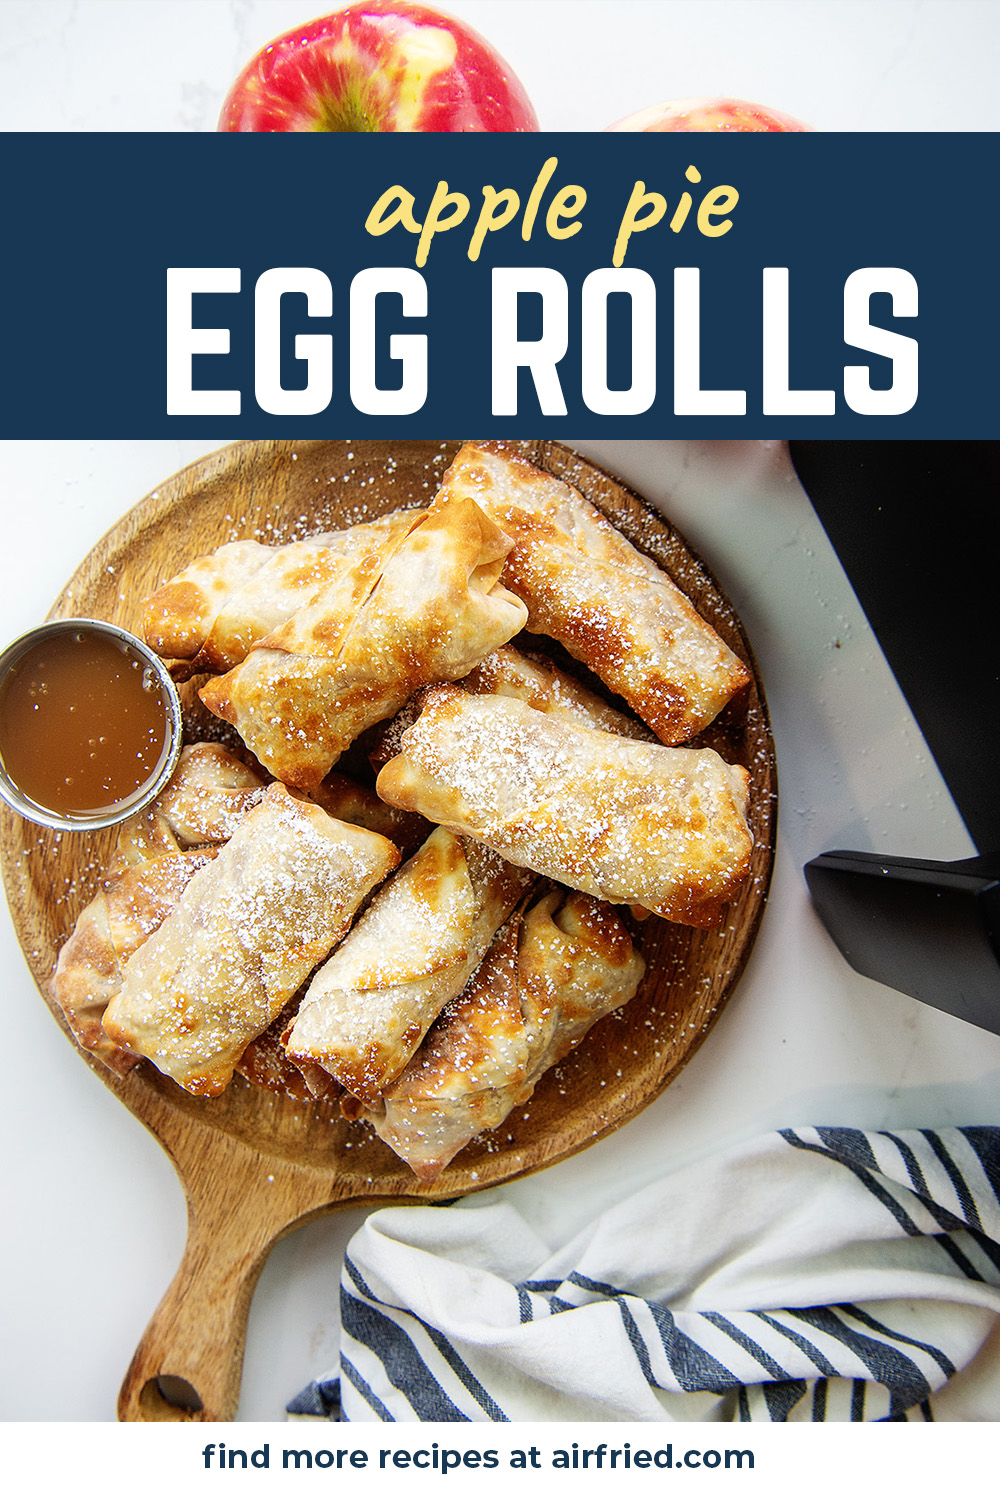 Overhead view of egg rolls and caramel on a wooden plate